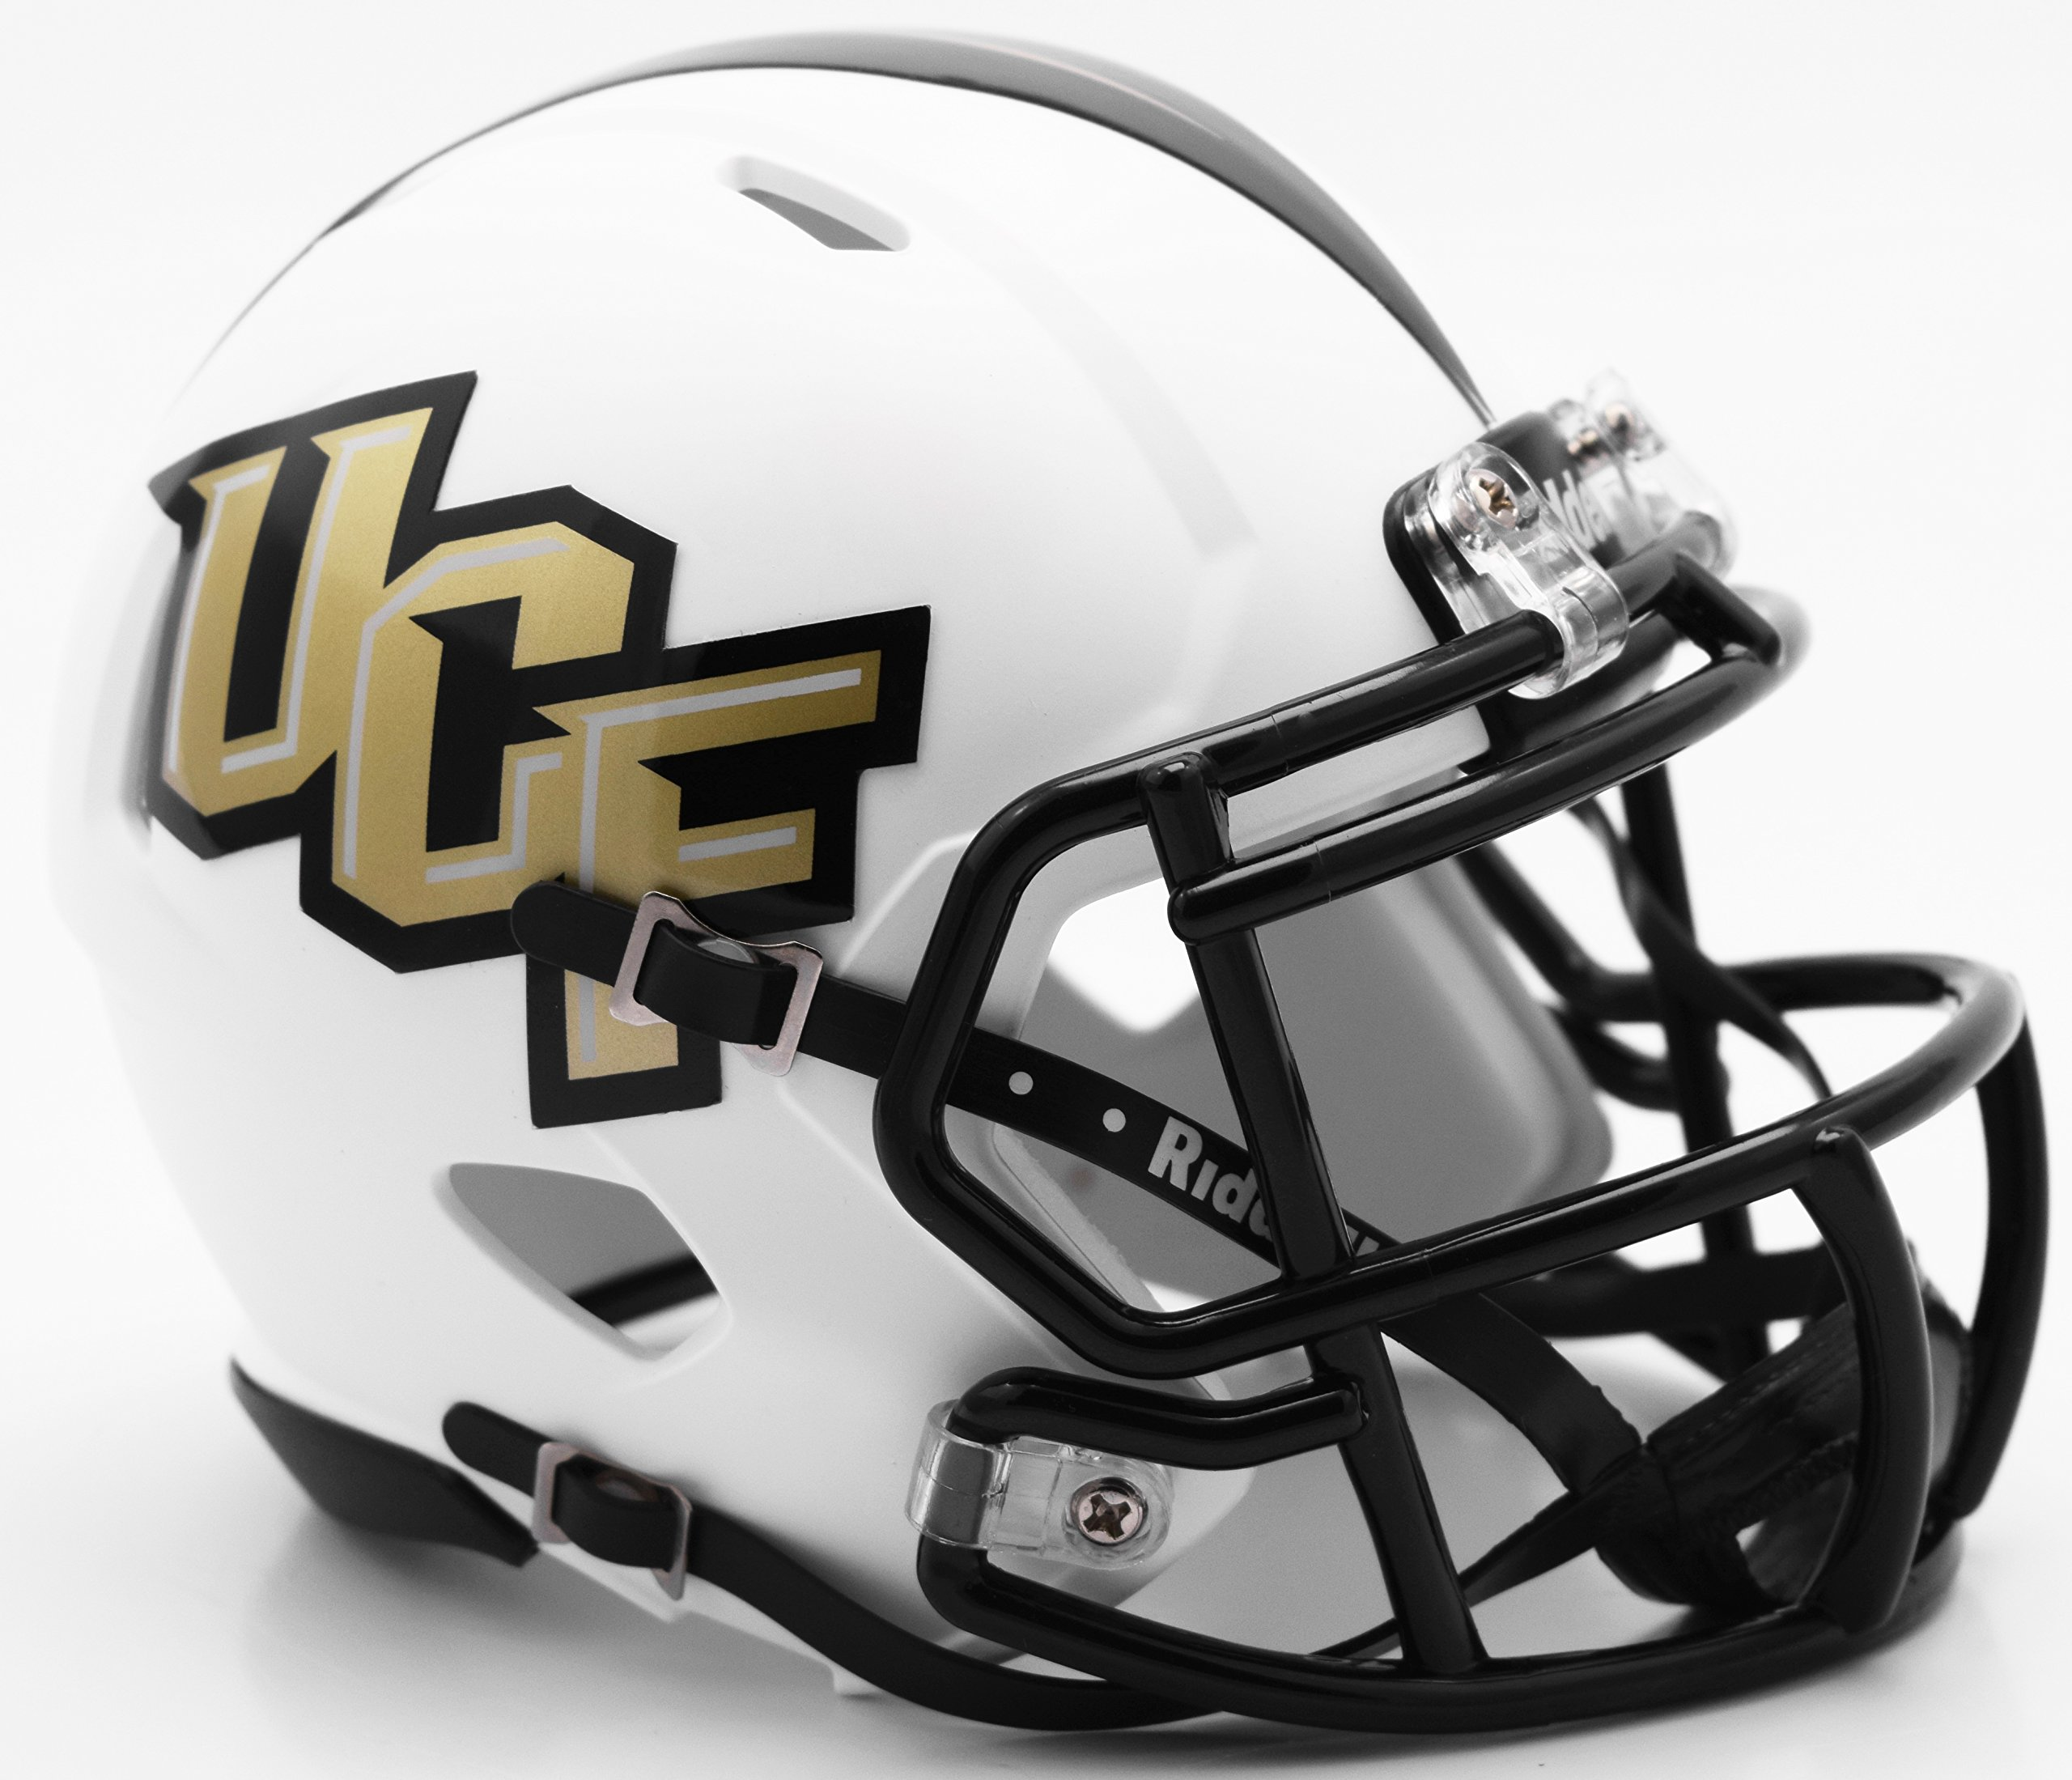 UCF Central Florida Knights White Matte Finish Riddell Speed Mini Football Helmet New in Riddell Box